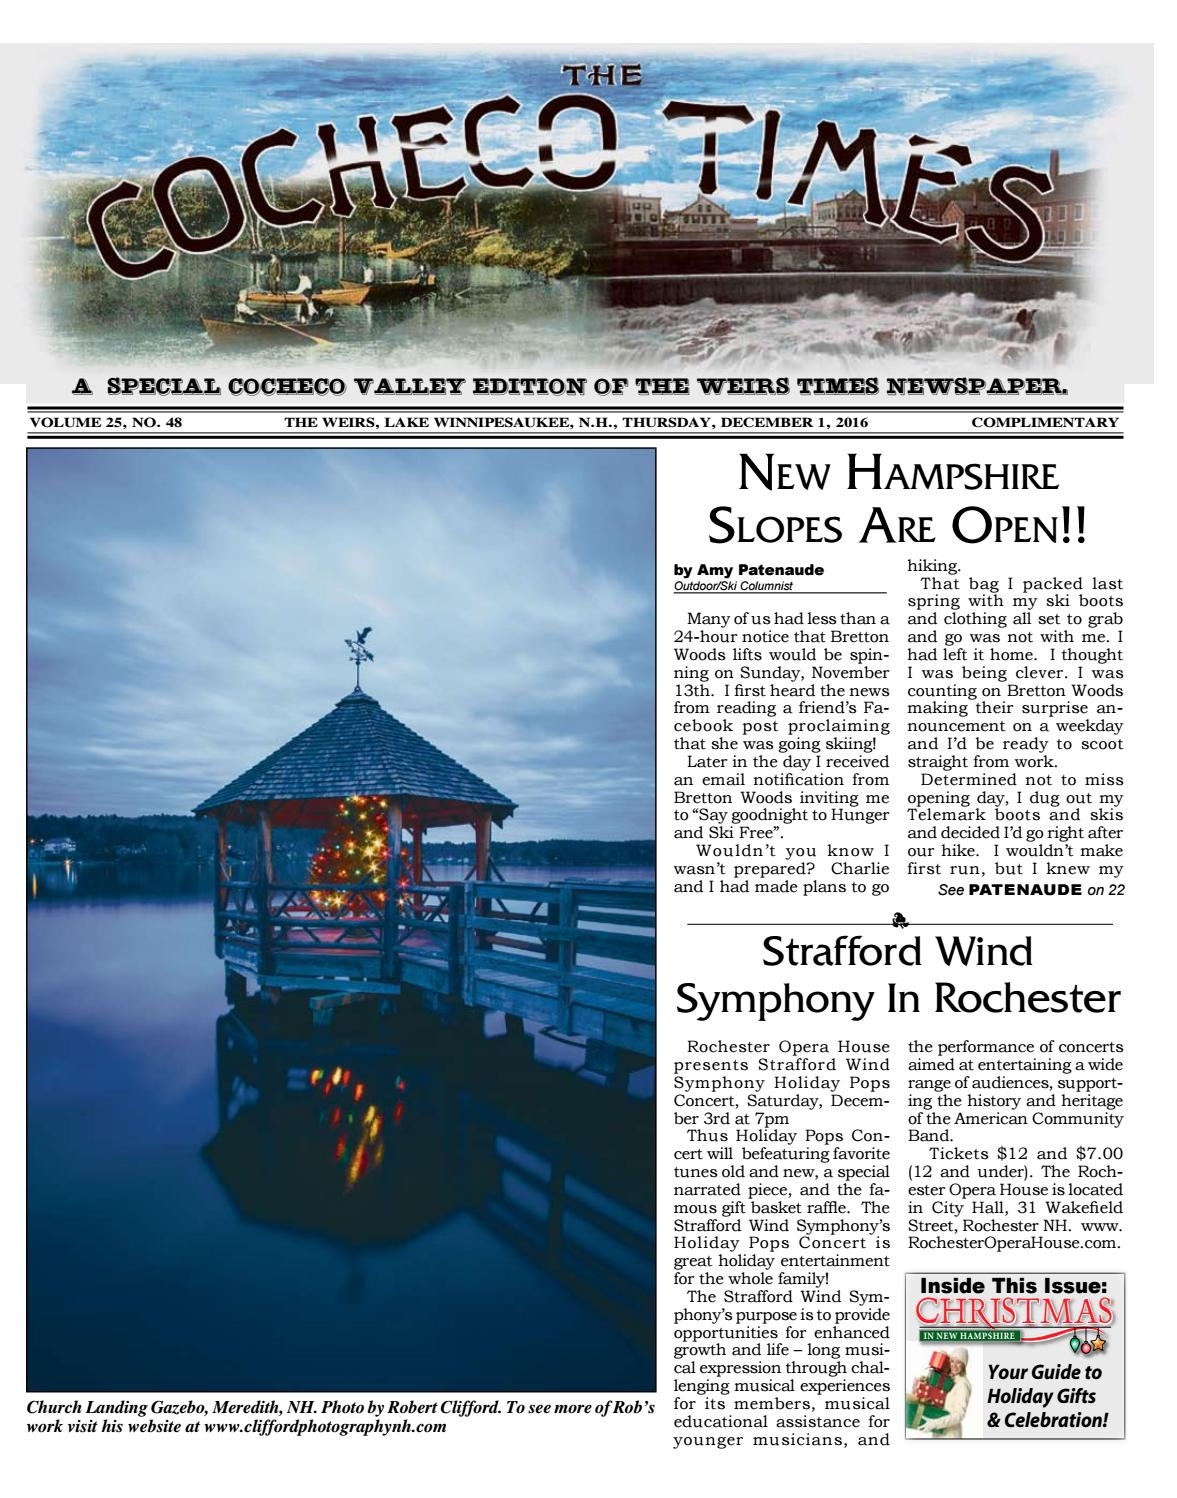 120116 cocheco times by the weirs publishing company issuu kristyandbryce Choice Image